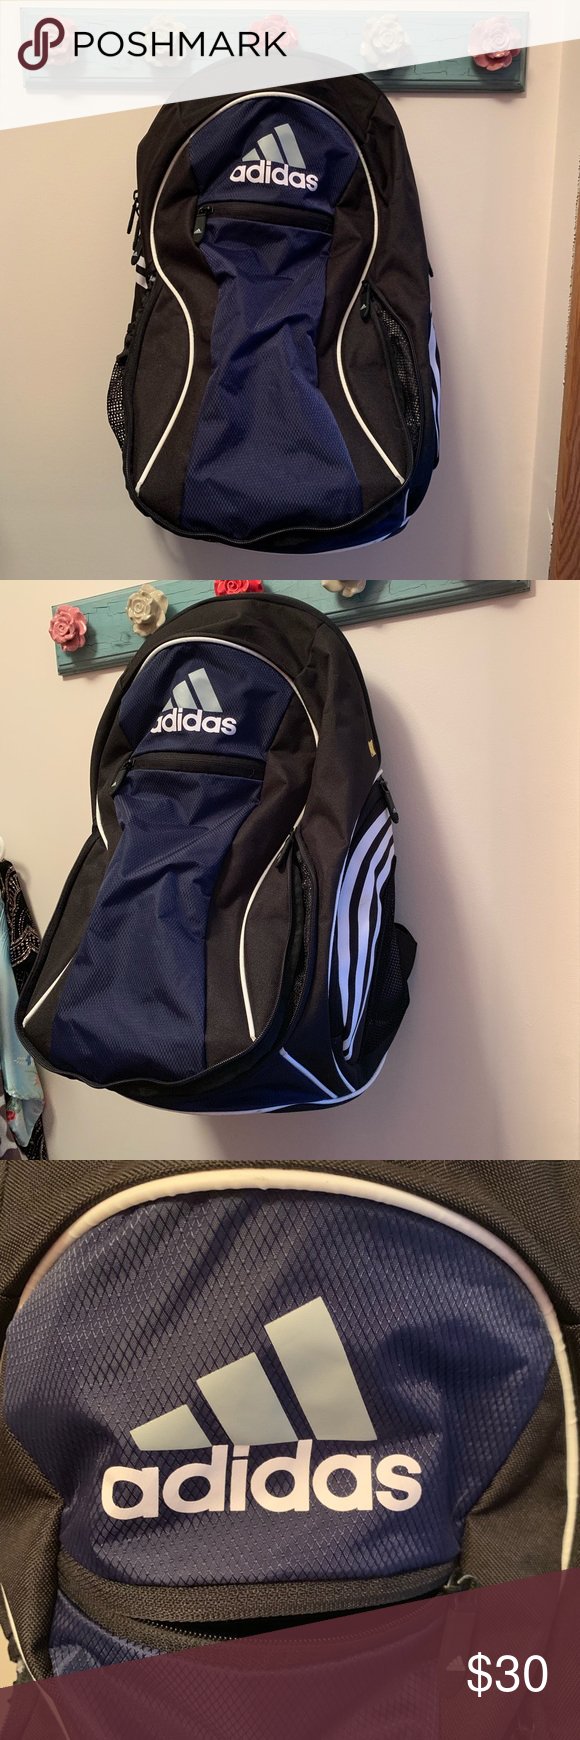 043d9f37452 Adidas soccer bag Like brand new, hardly used, clean, great quality adidas  Bags